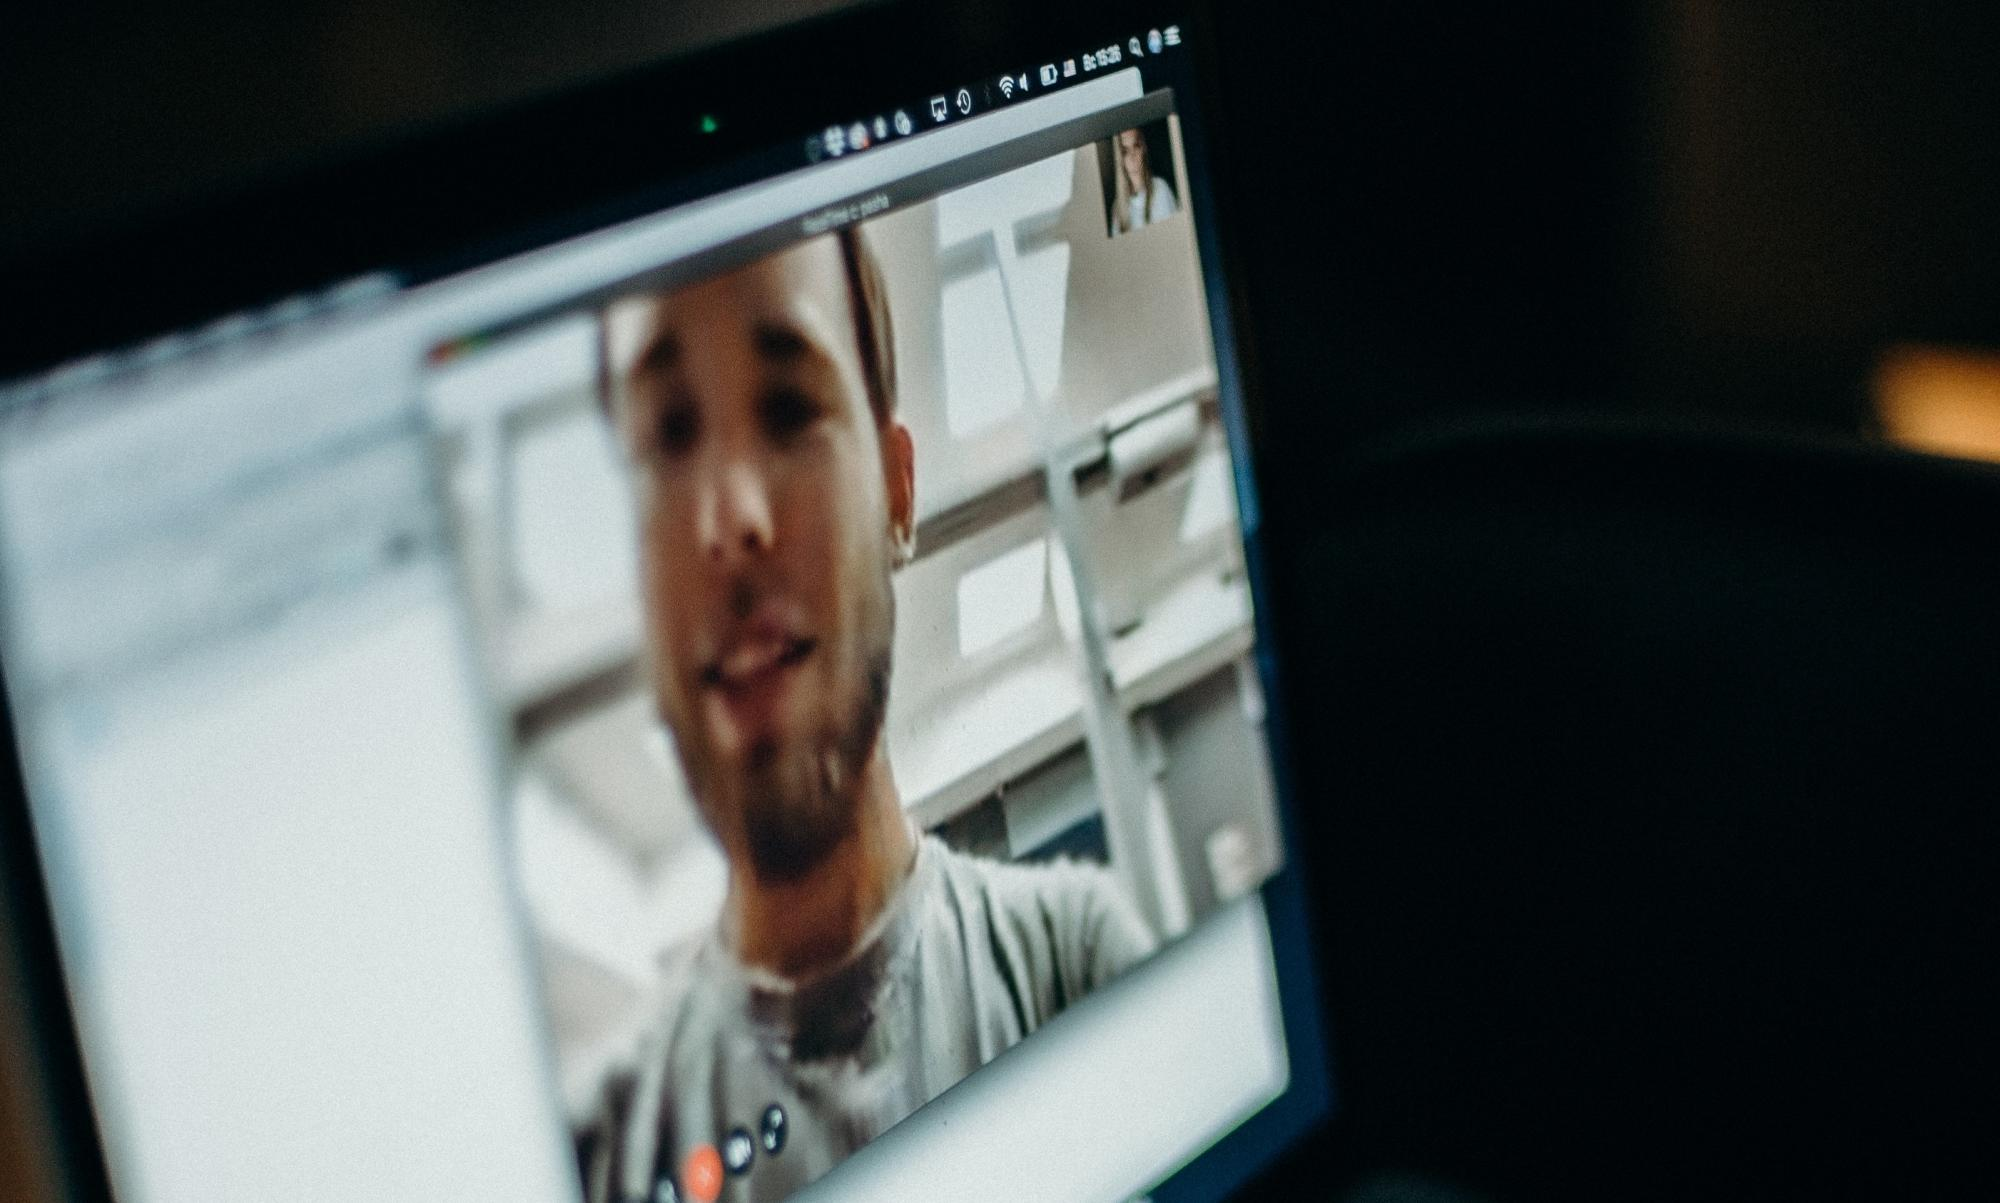 face on video chat screen, restorative justice